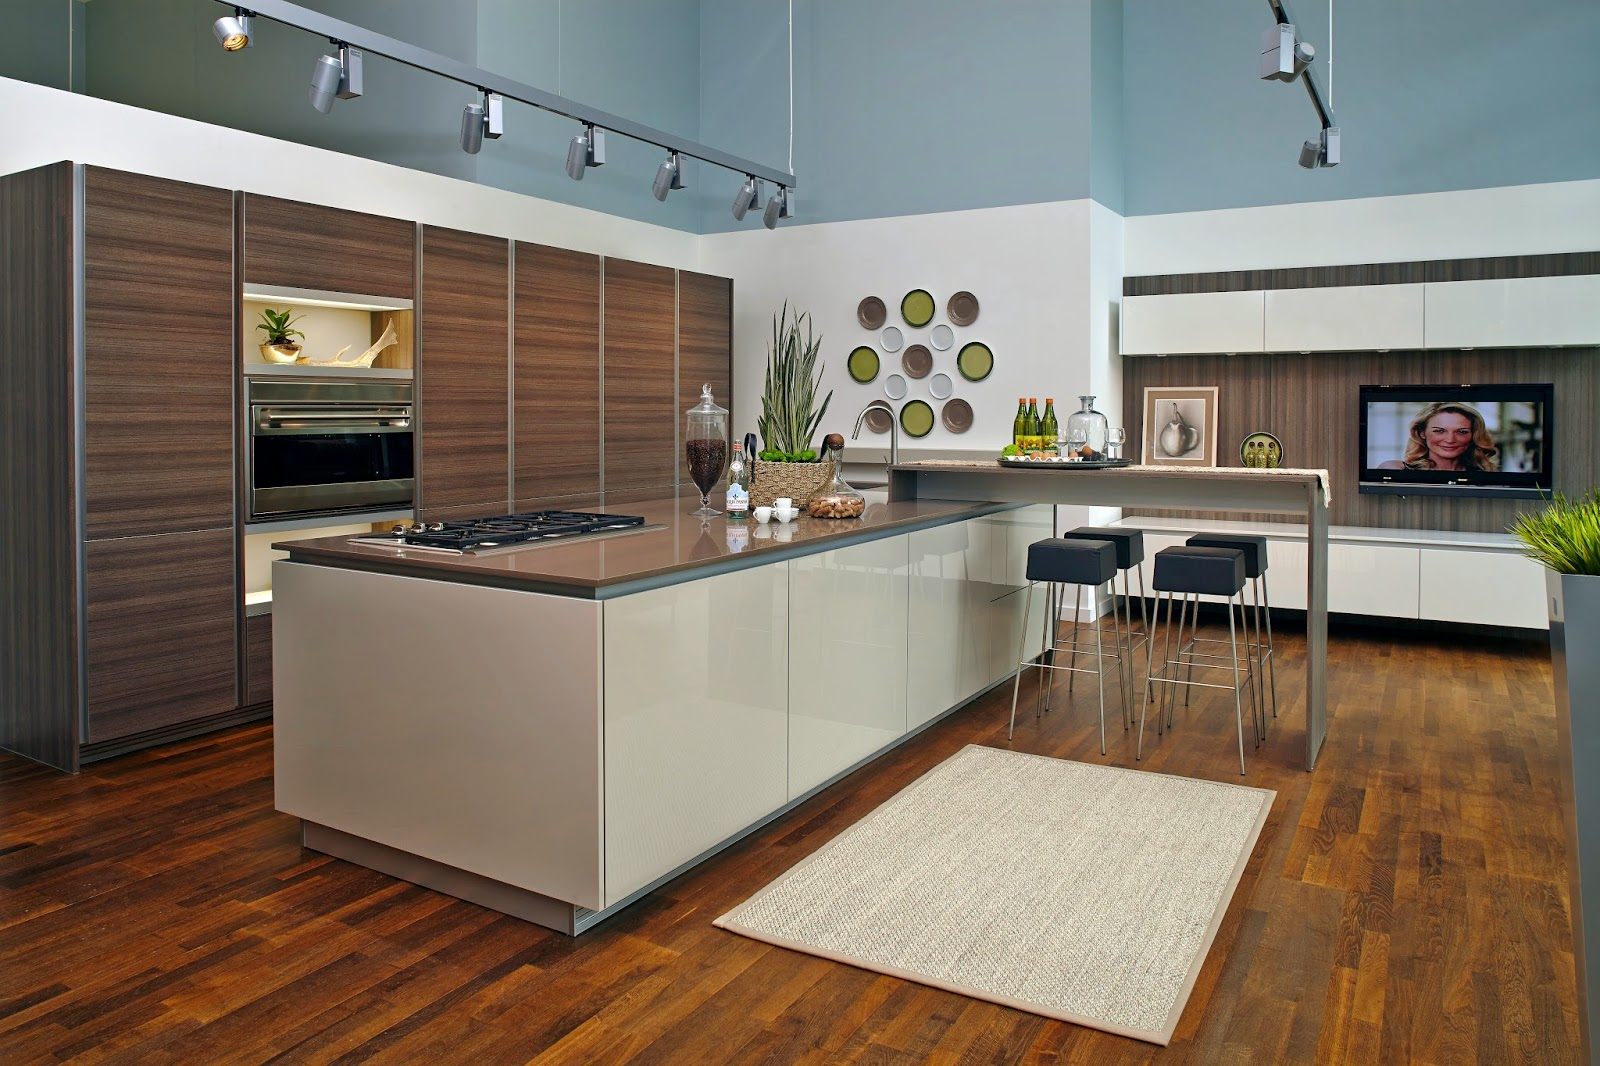 Robin 39 s nest 5 reasons why you should consider a poggenpohl kitchen Kitchen design center atlanta